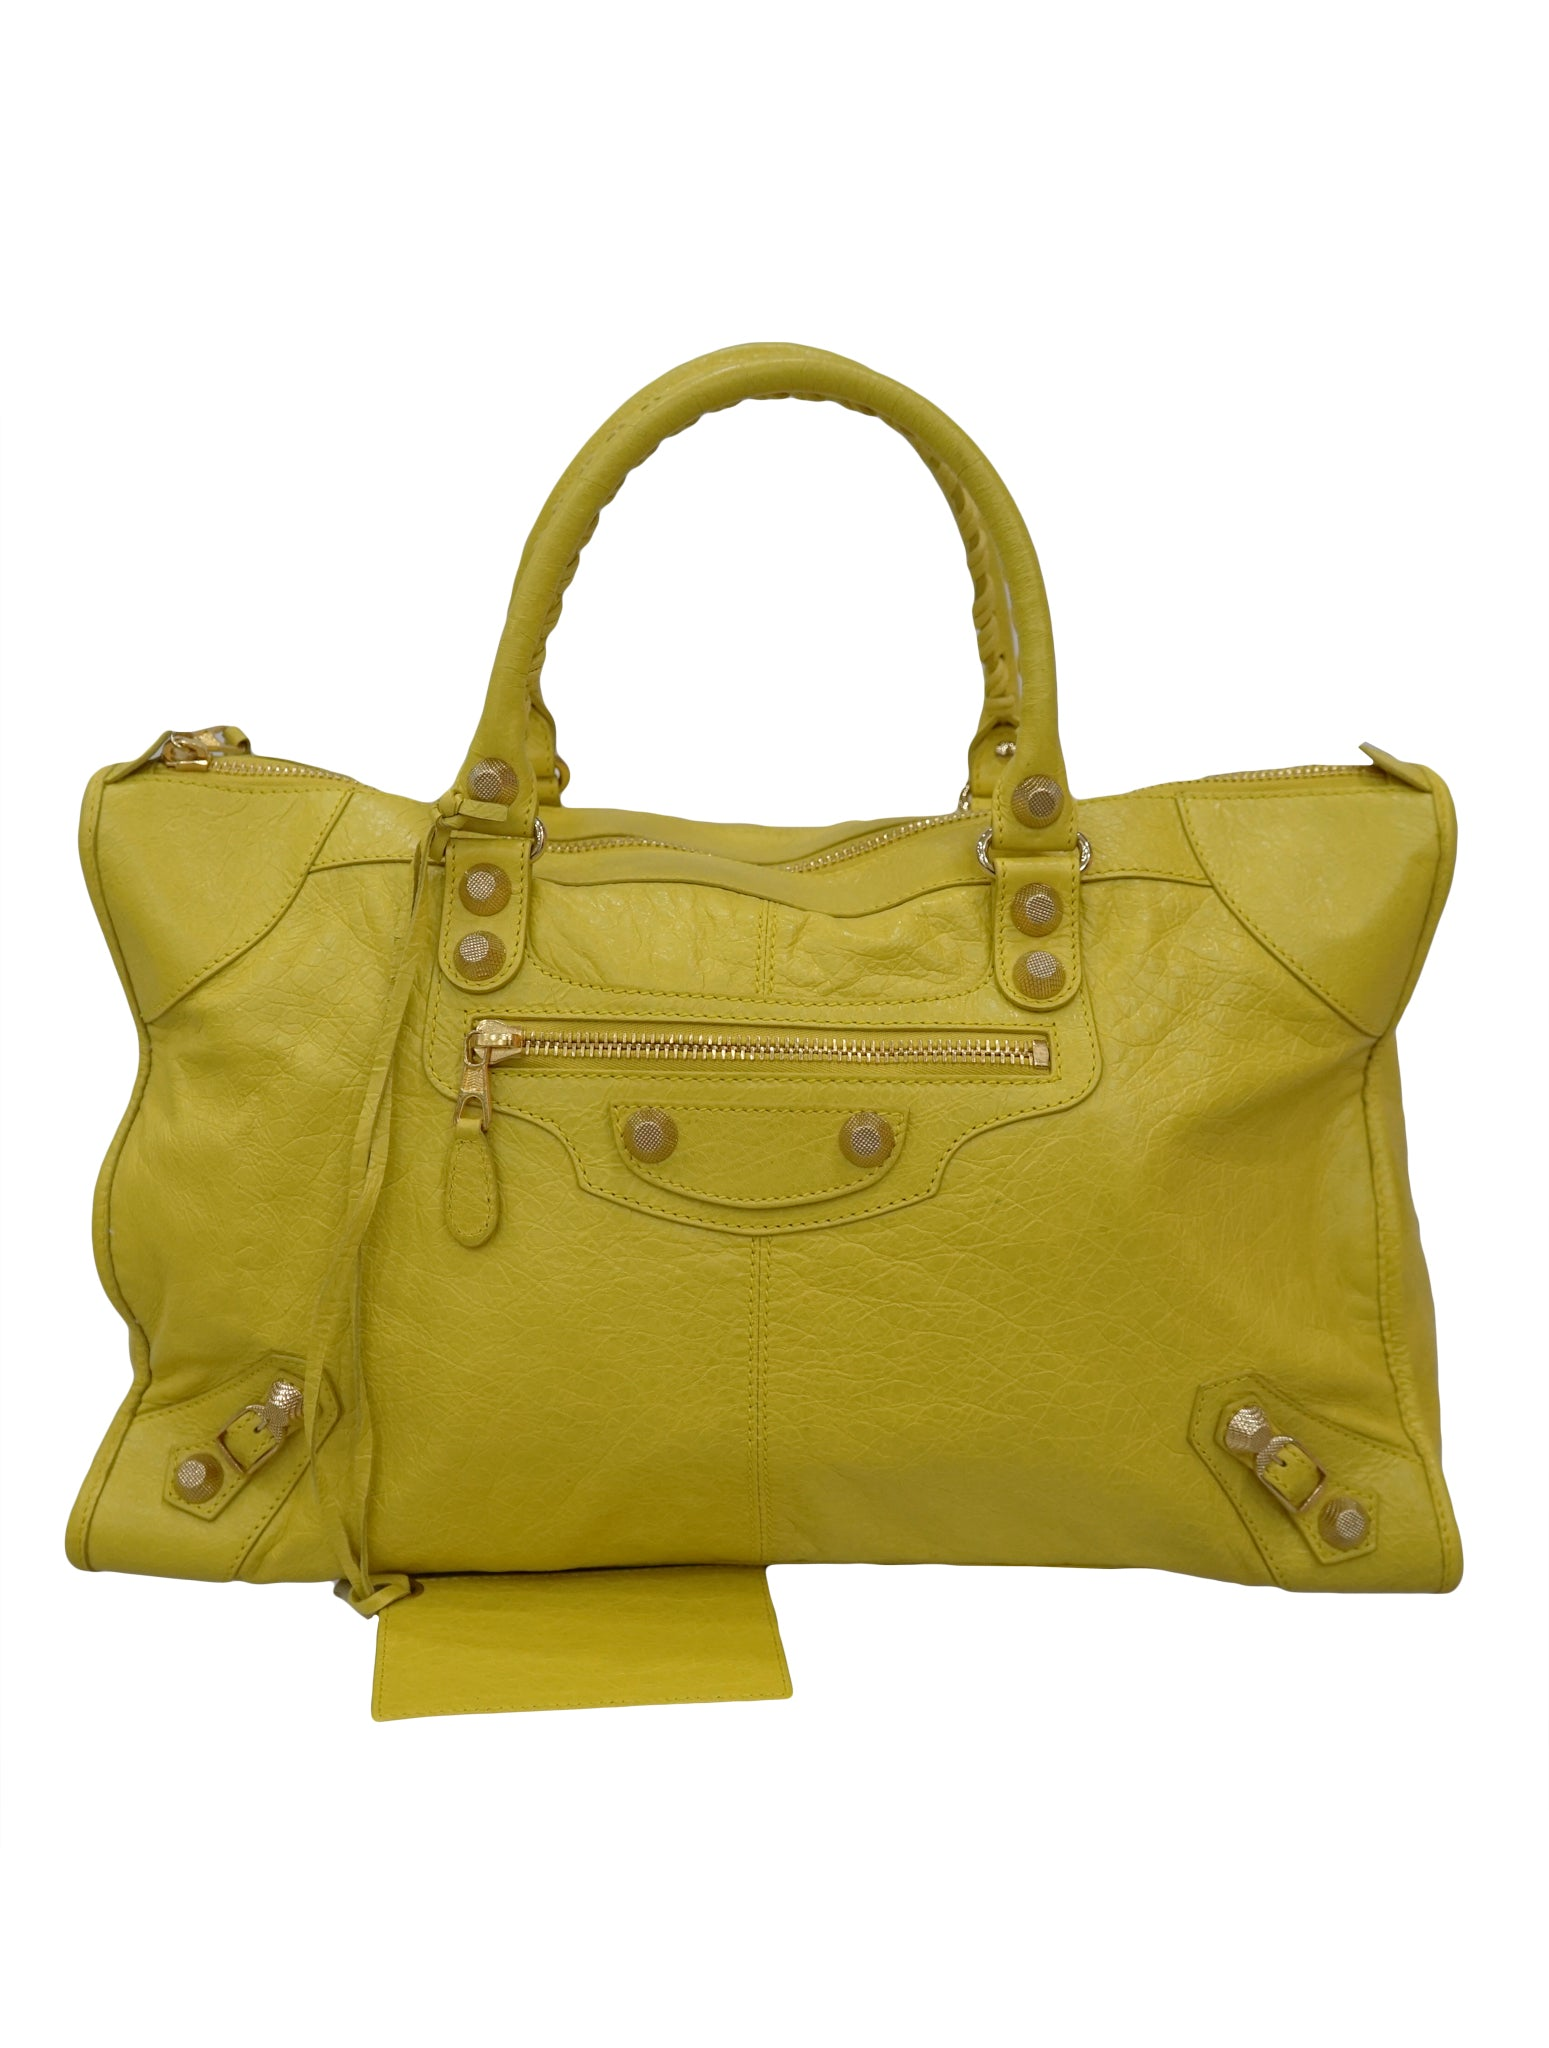 LAMBSKIN LEATHER GIANT 21 GOLD CITY BAG